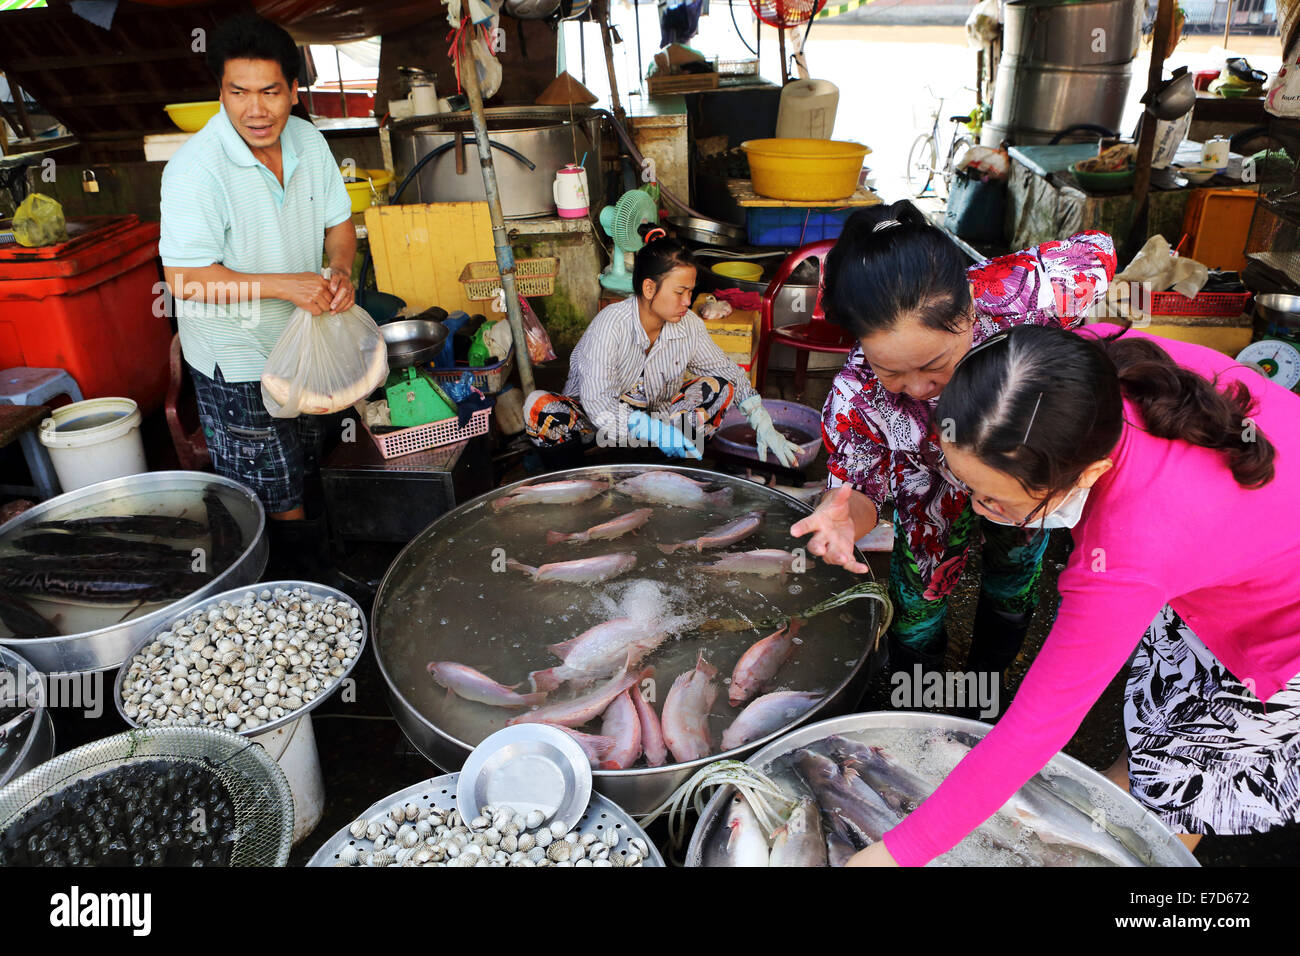 A fish stall at the local market the Mekong River in Sa Dec, Vietnam. - Stock Image